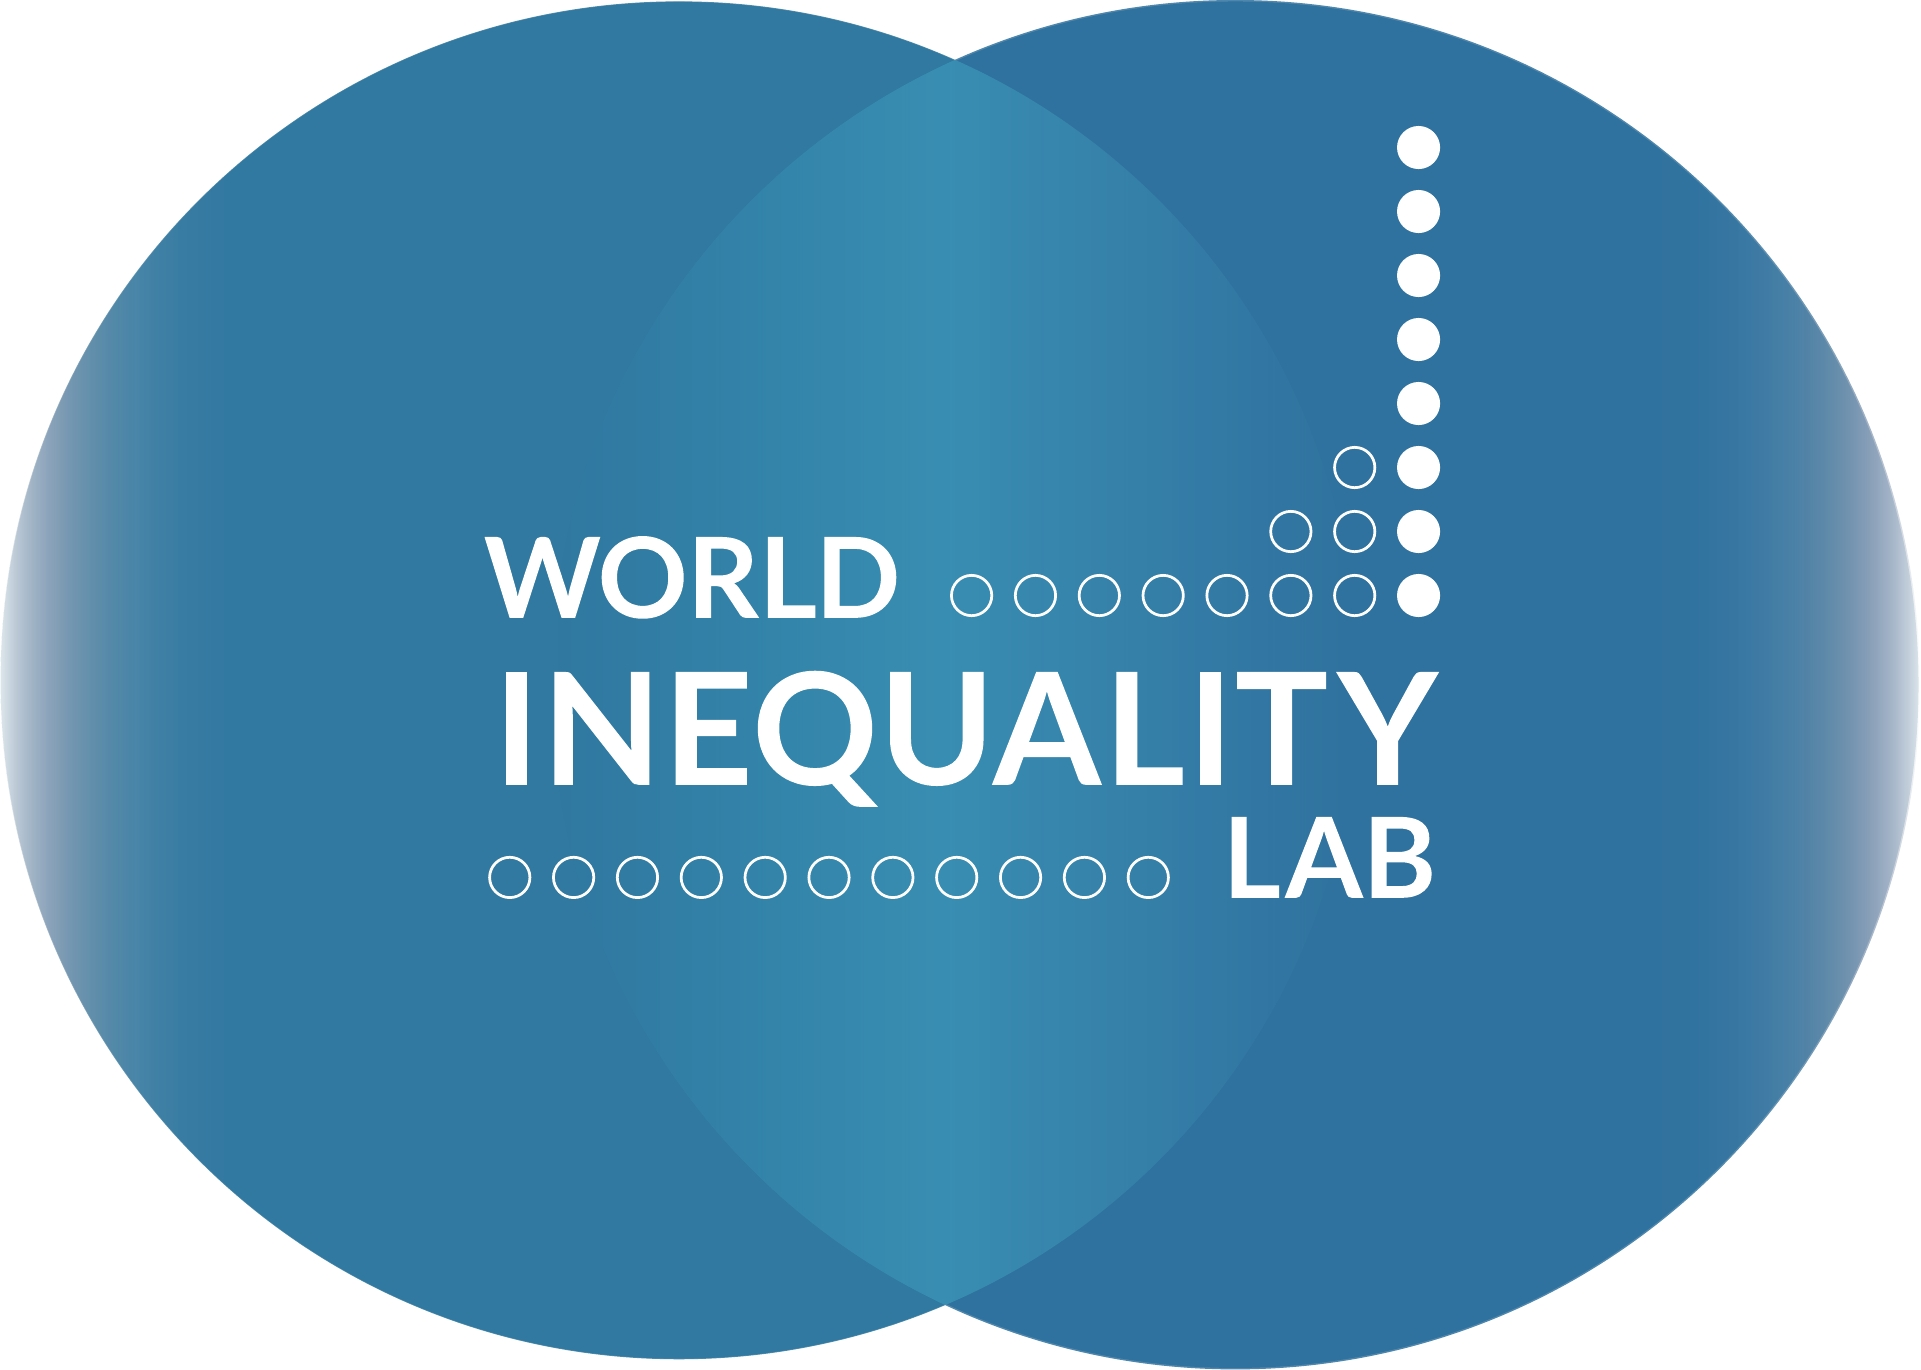 World Inequality Lab - WID - World Inequality Database